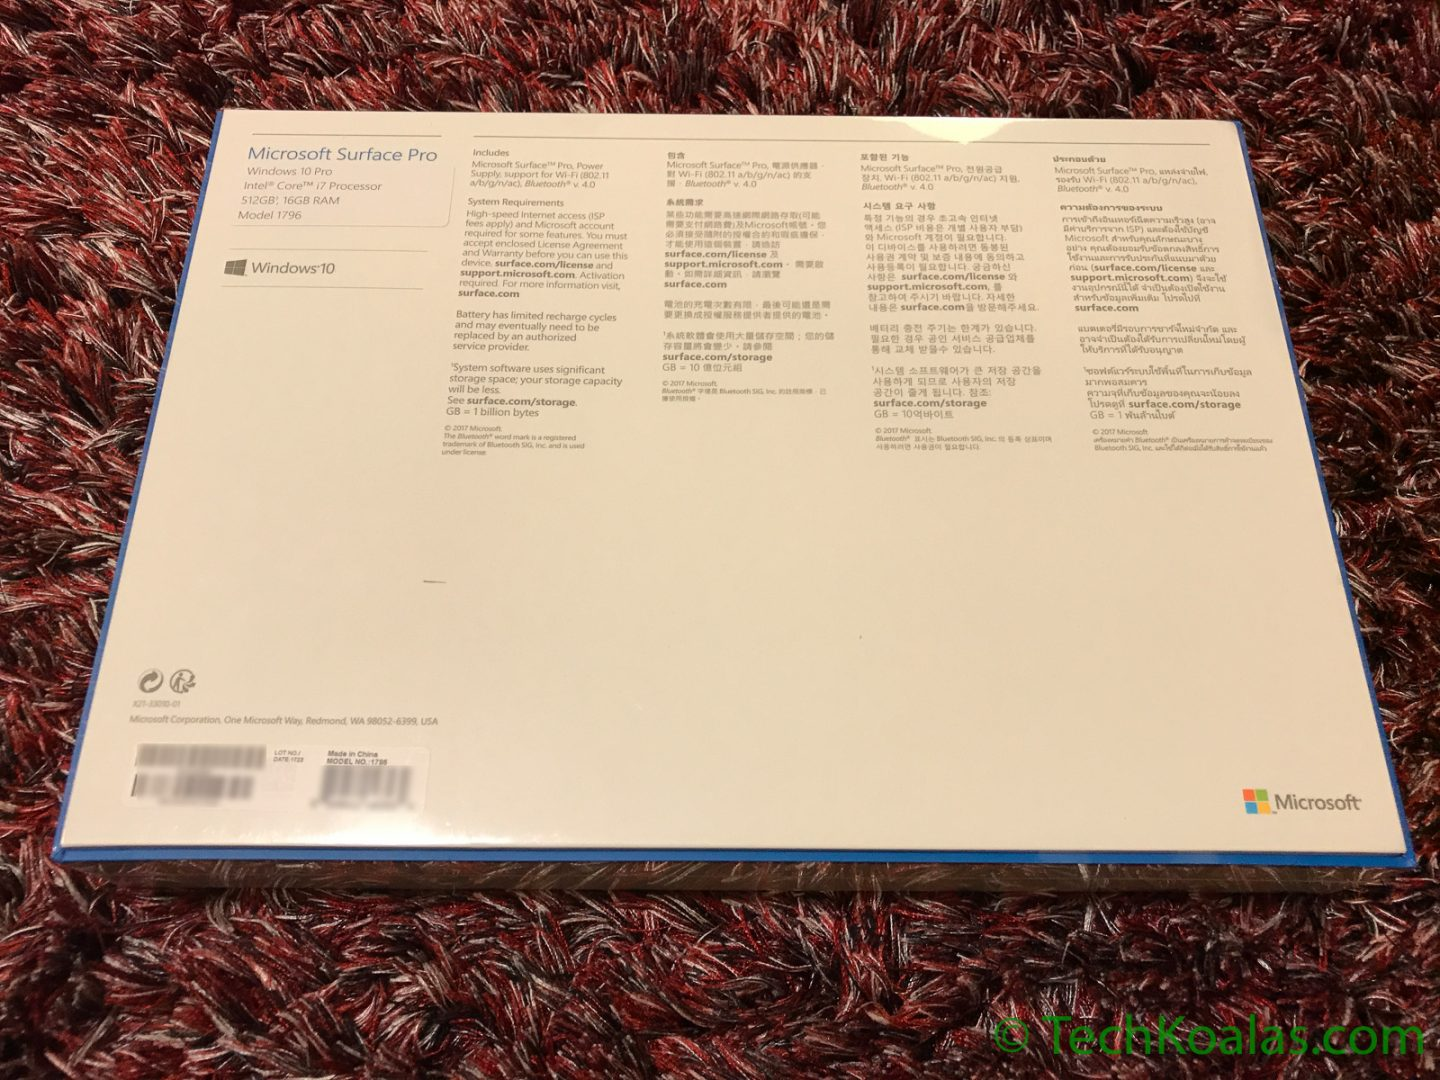 Figure 2. Microsoft Surface Pro - Back of the box shows the Surface model number and specs.